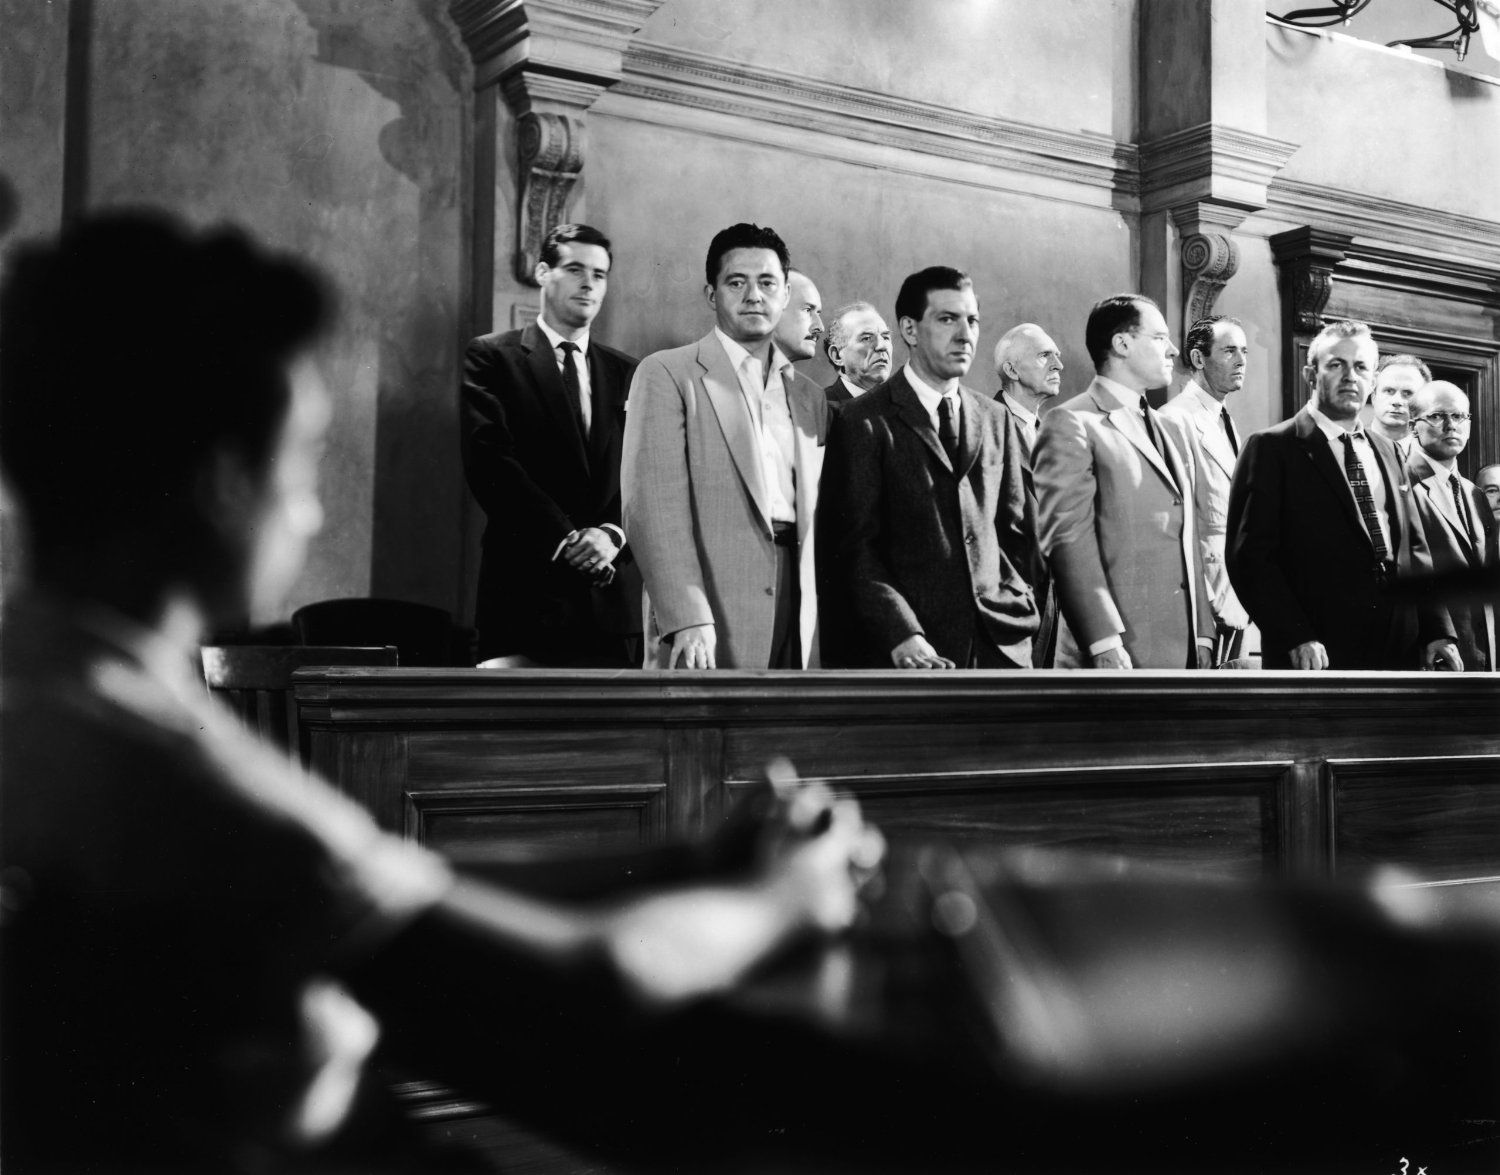 Sidney Lumet's '12 Angry Men' To Hone Leadership Skills Of Top Bureaucrats